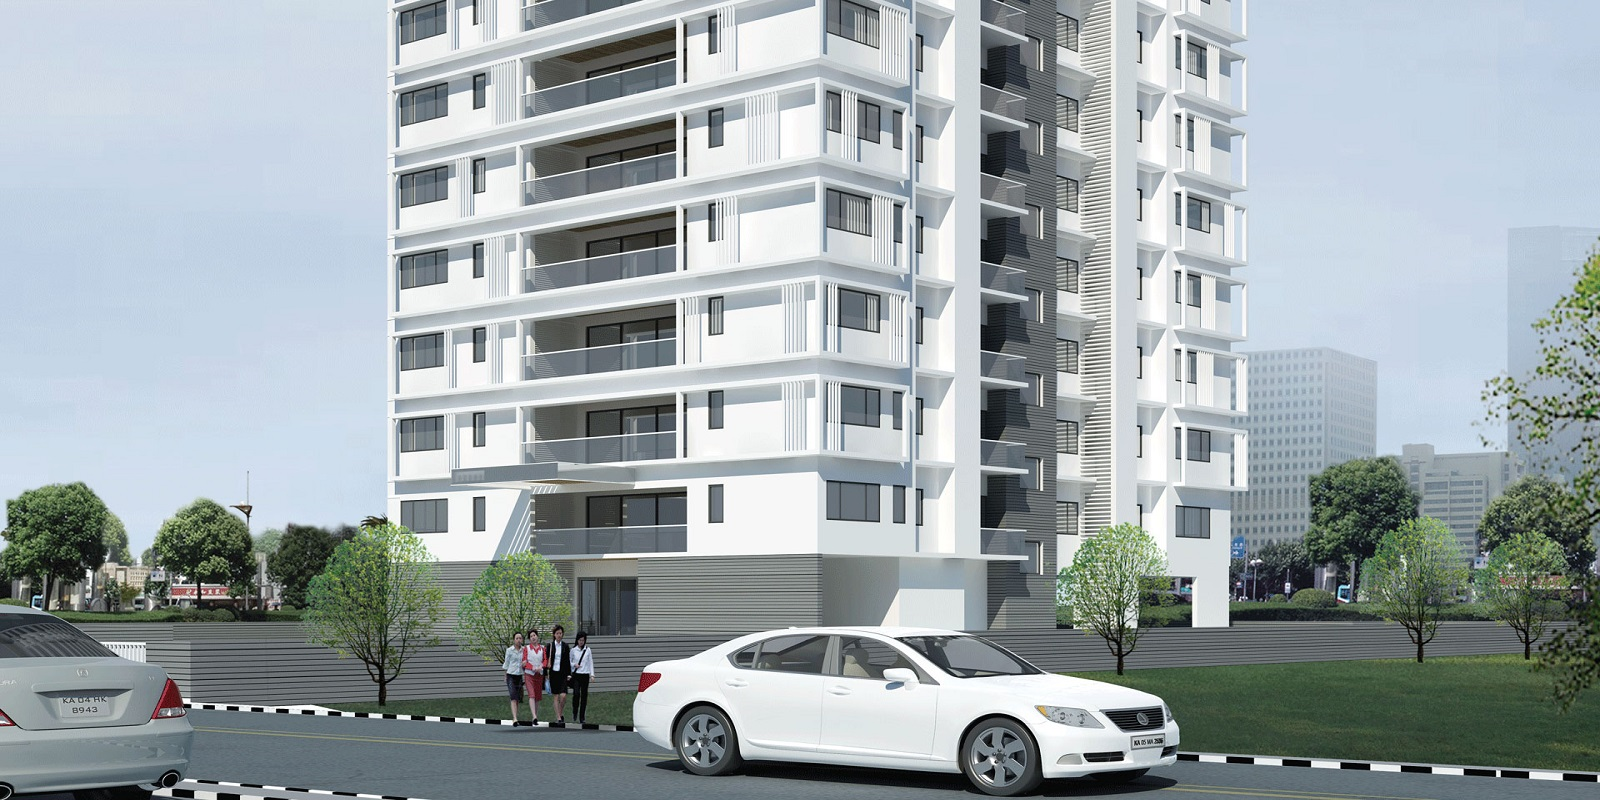 tower-view-Picture-prestige-spencer-heights-2116894